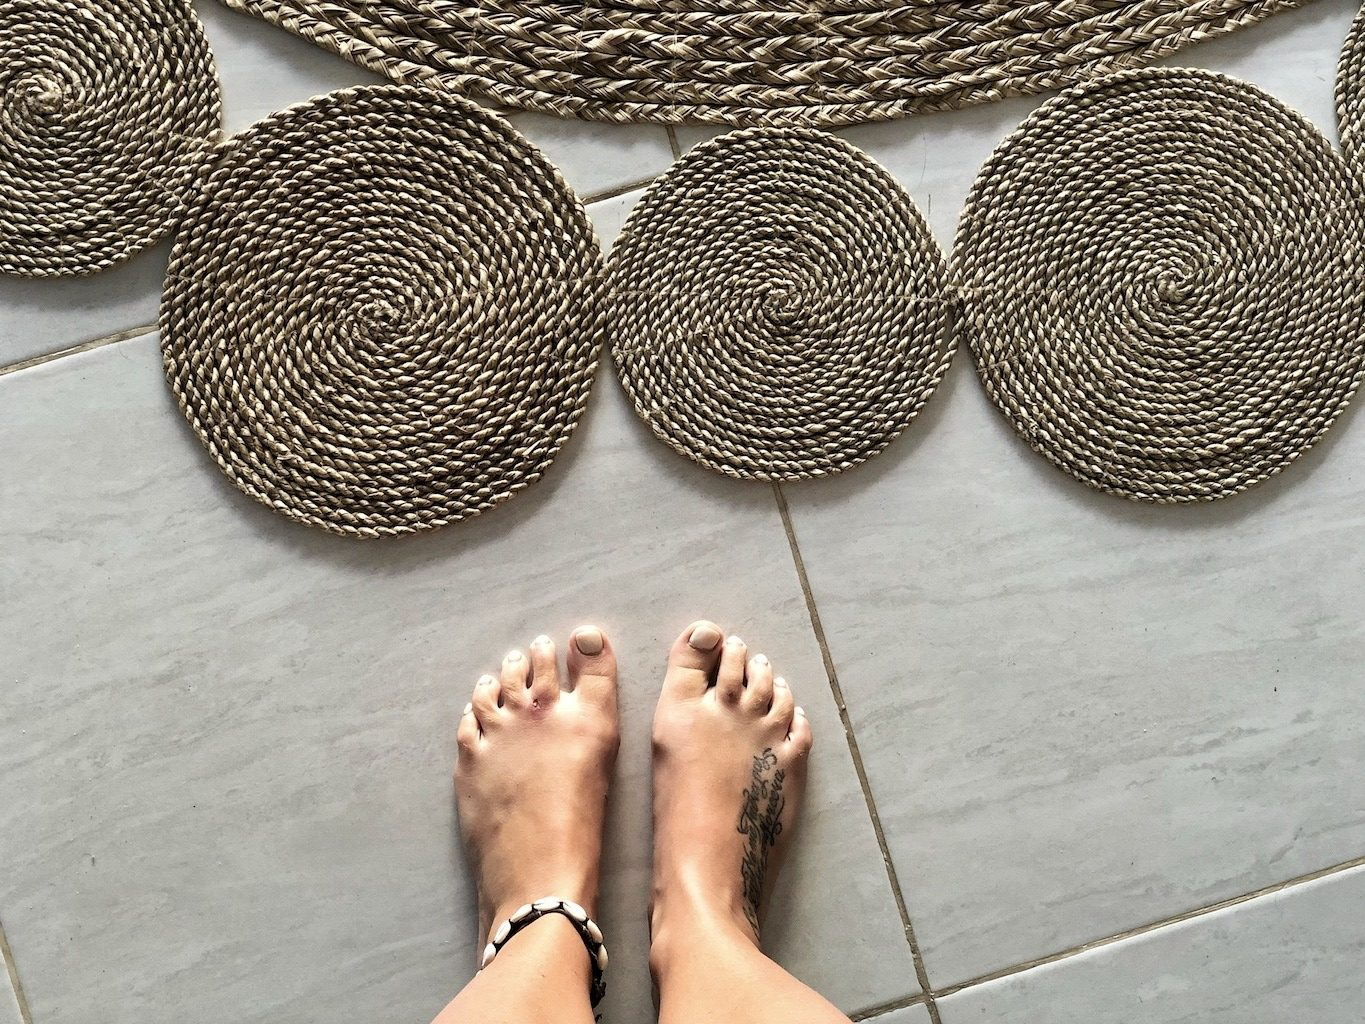 Hostel Recommendation While Travelling to Canggu – Gypsy Moon Bali Floor Design